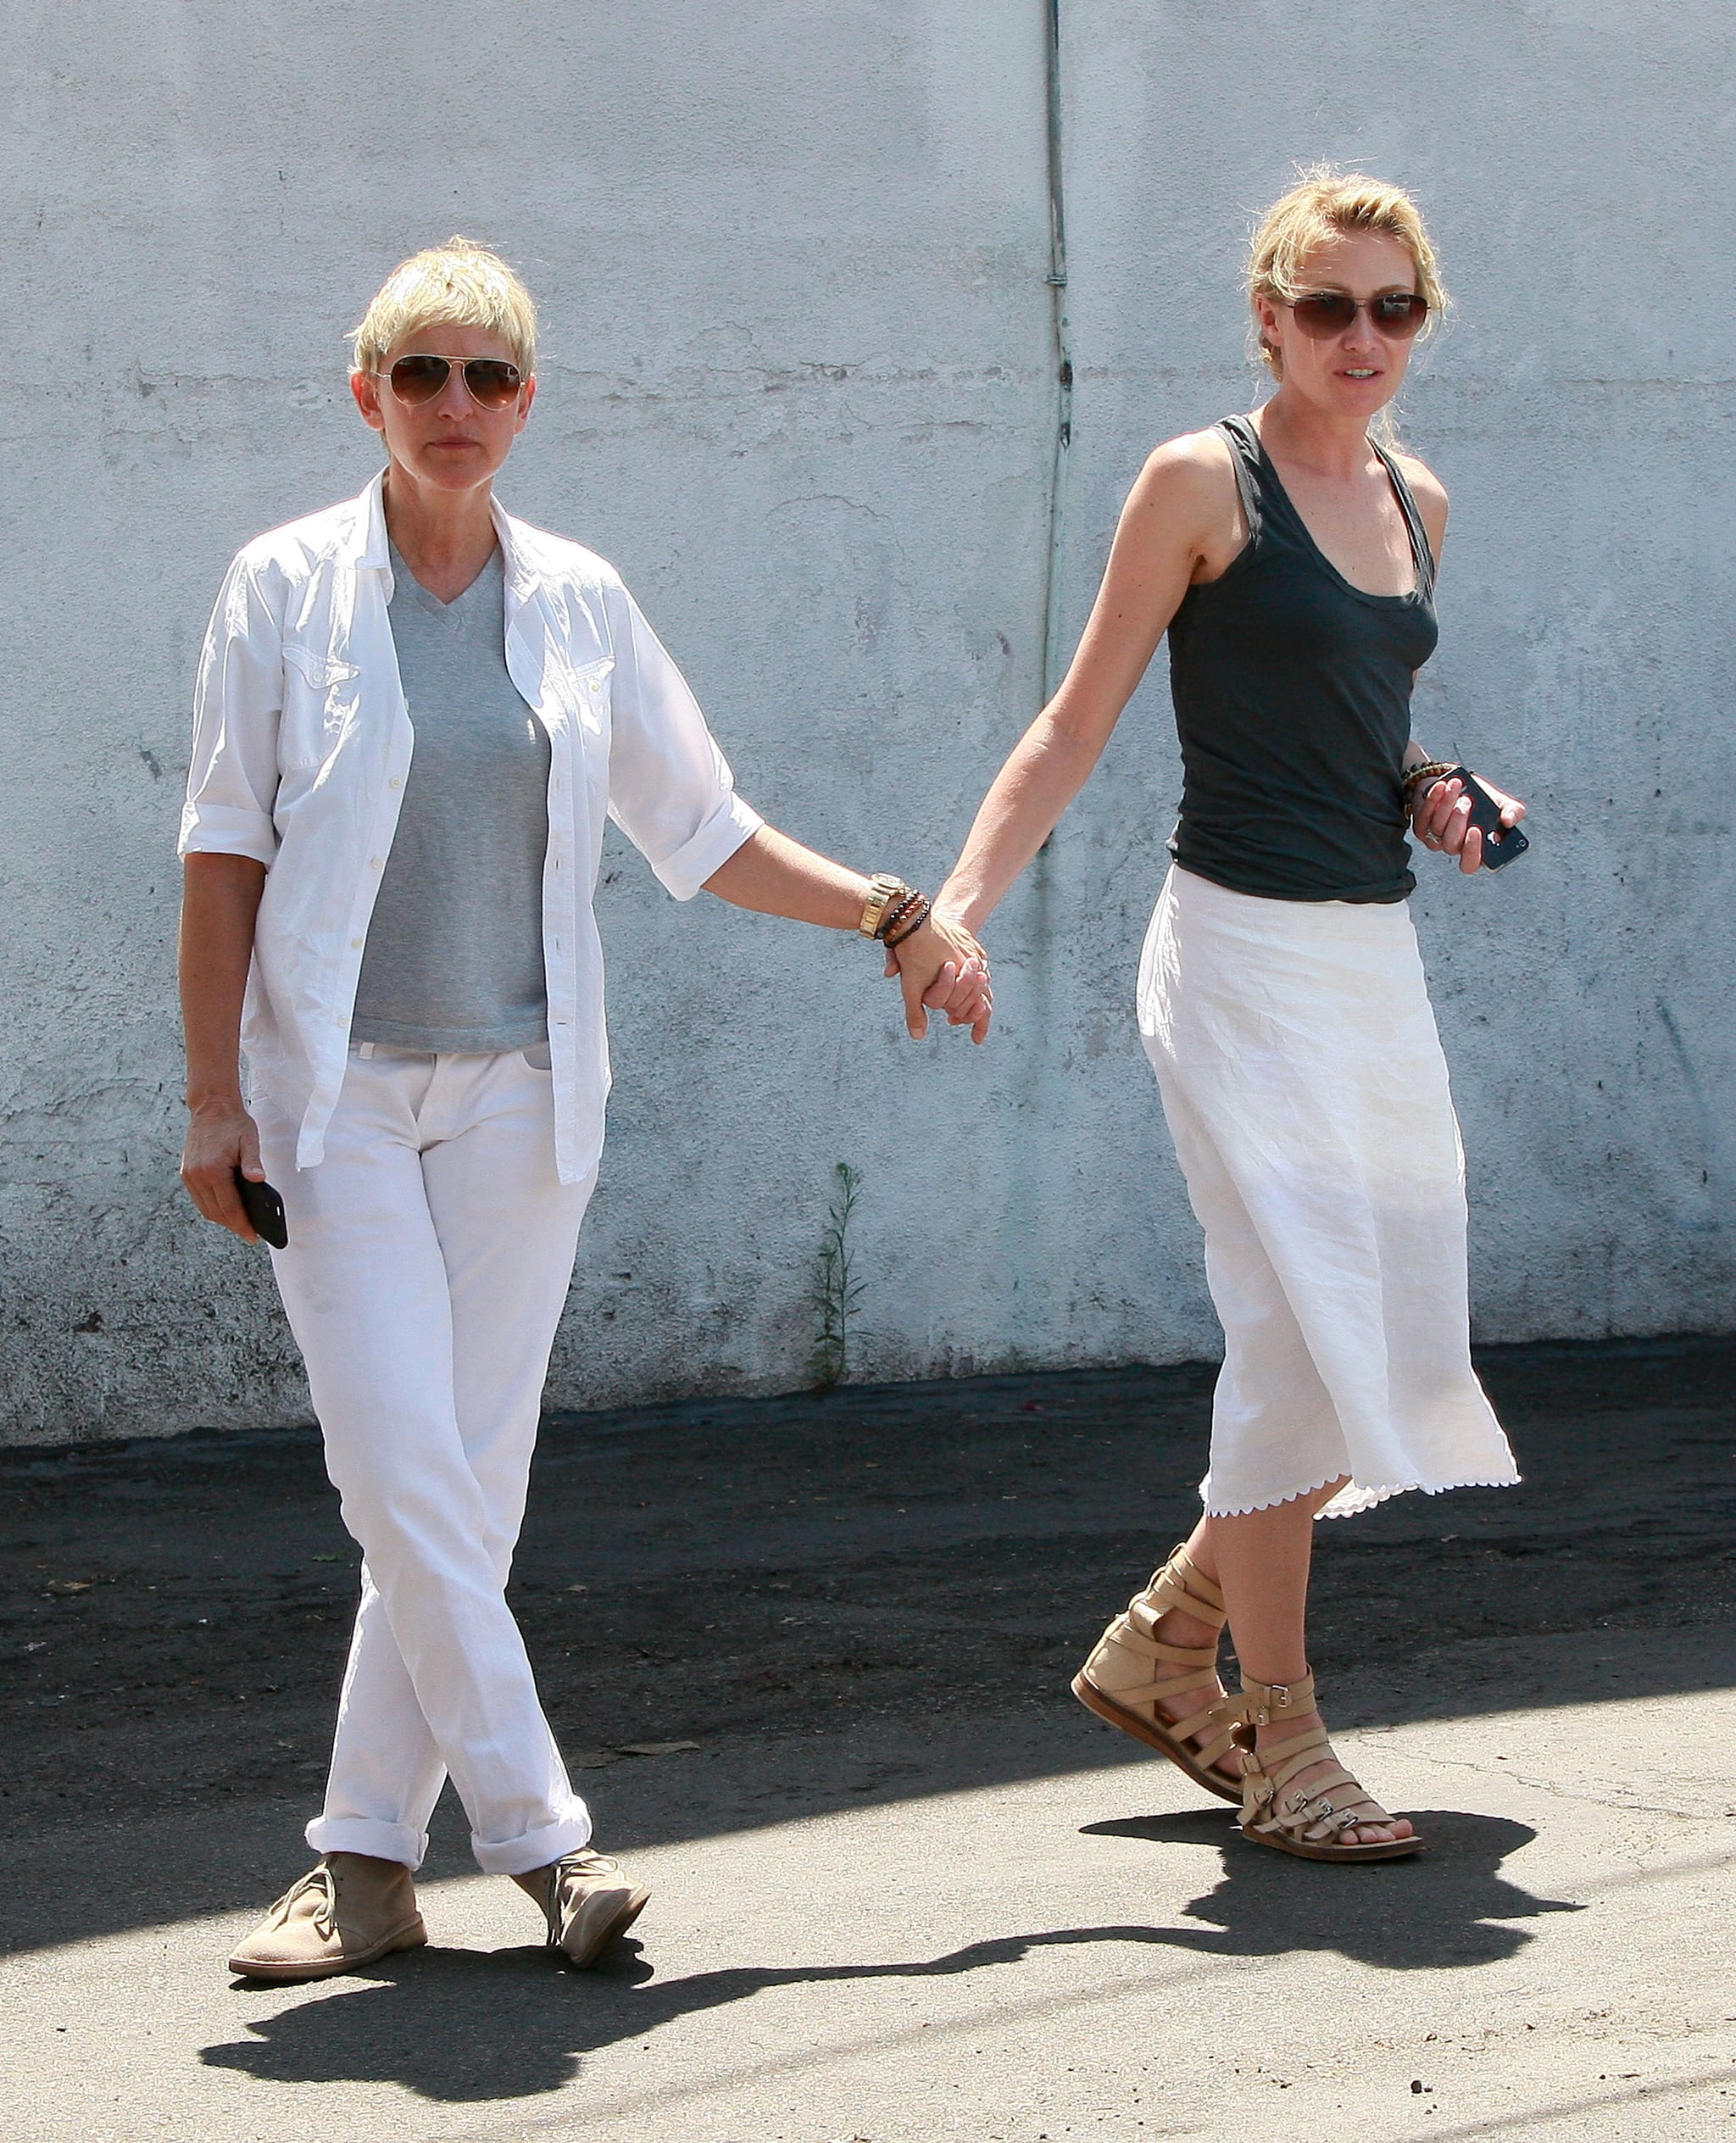 Portia De Rossi Young: Pictures Of Ellen DeGeneres And Portia De Rossi In LA